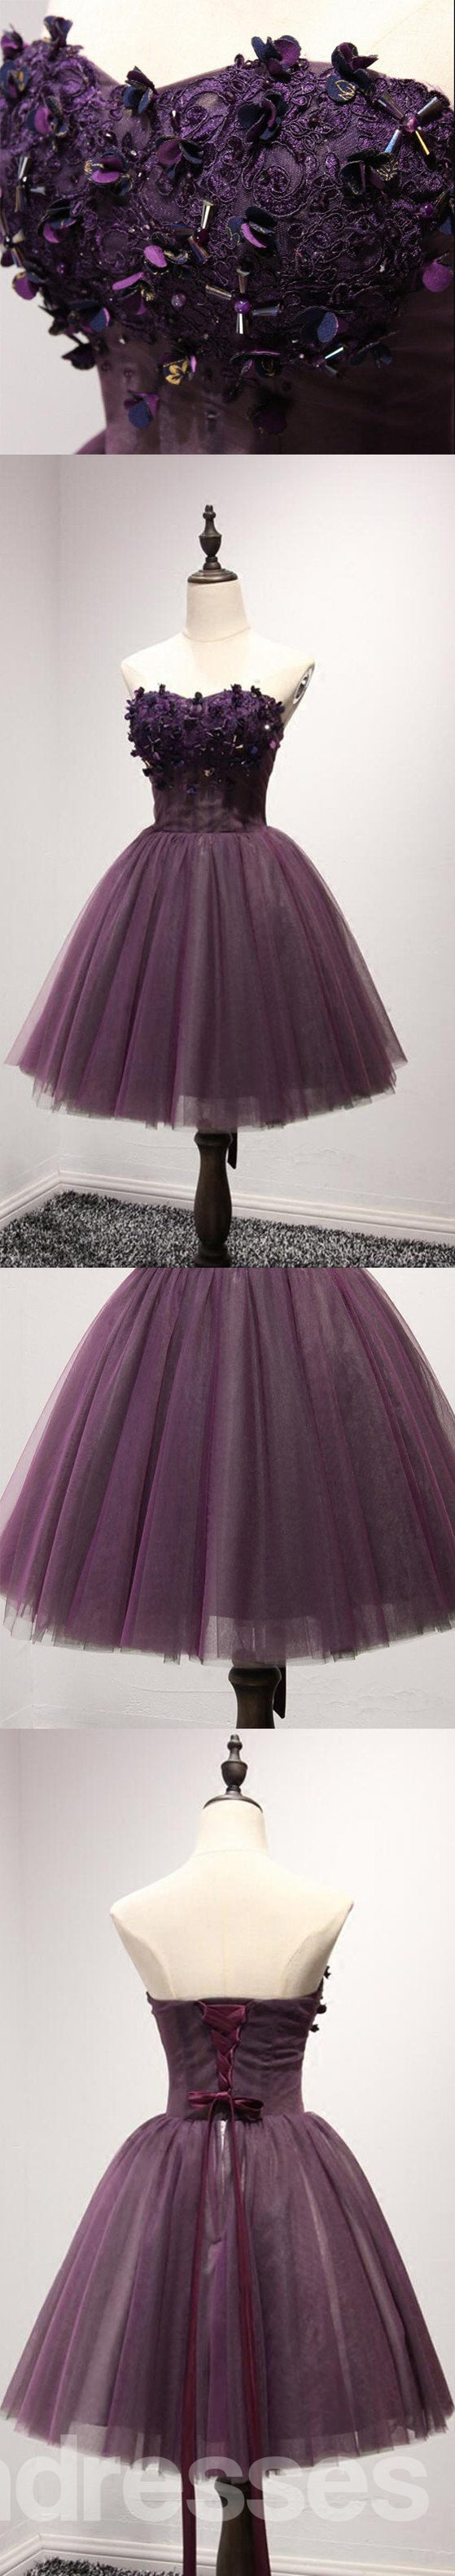 Strapless Purple Lace Homecoming Prom Dresses, Affordable Short Party Corset Back Prom Dresses, Perfect Homecoming Dresses, CM218